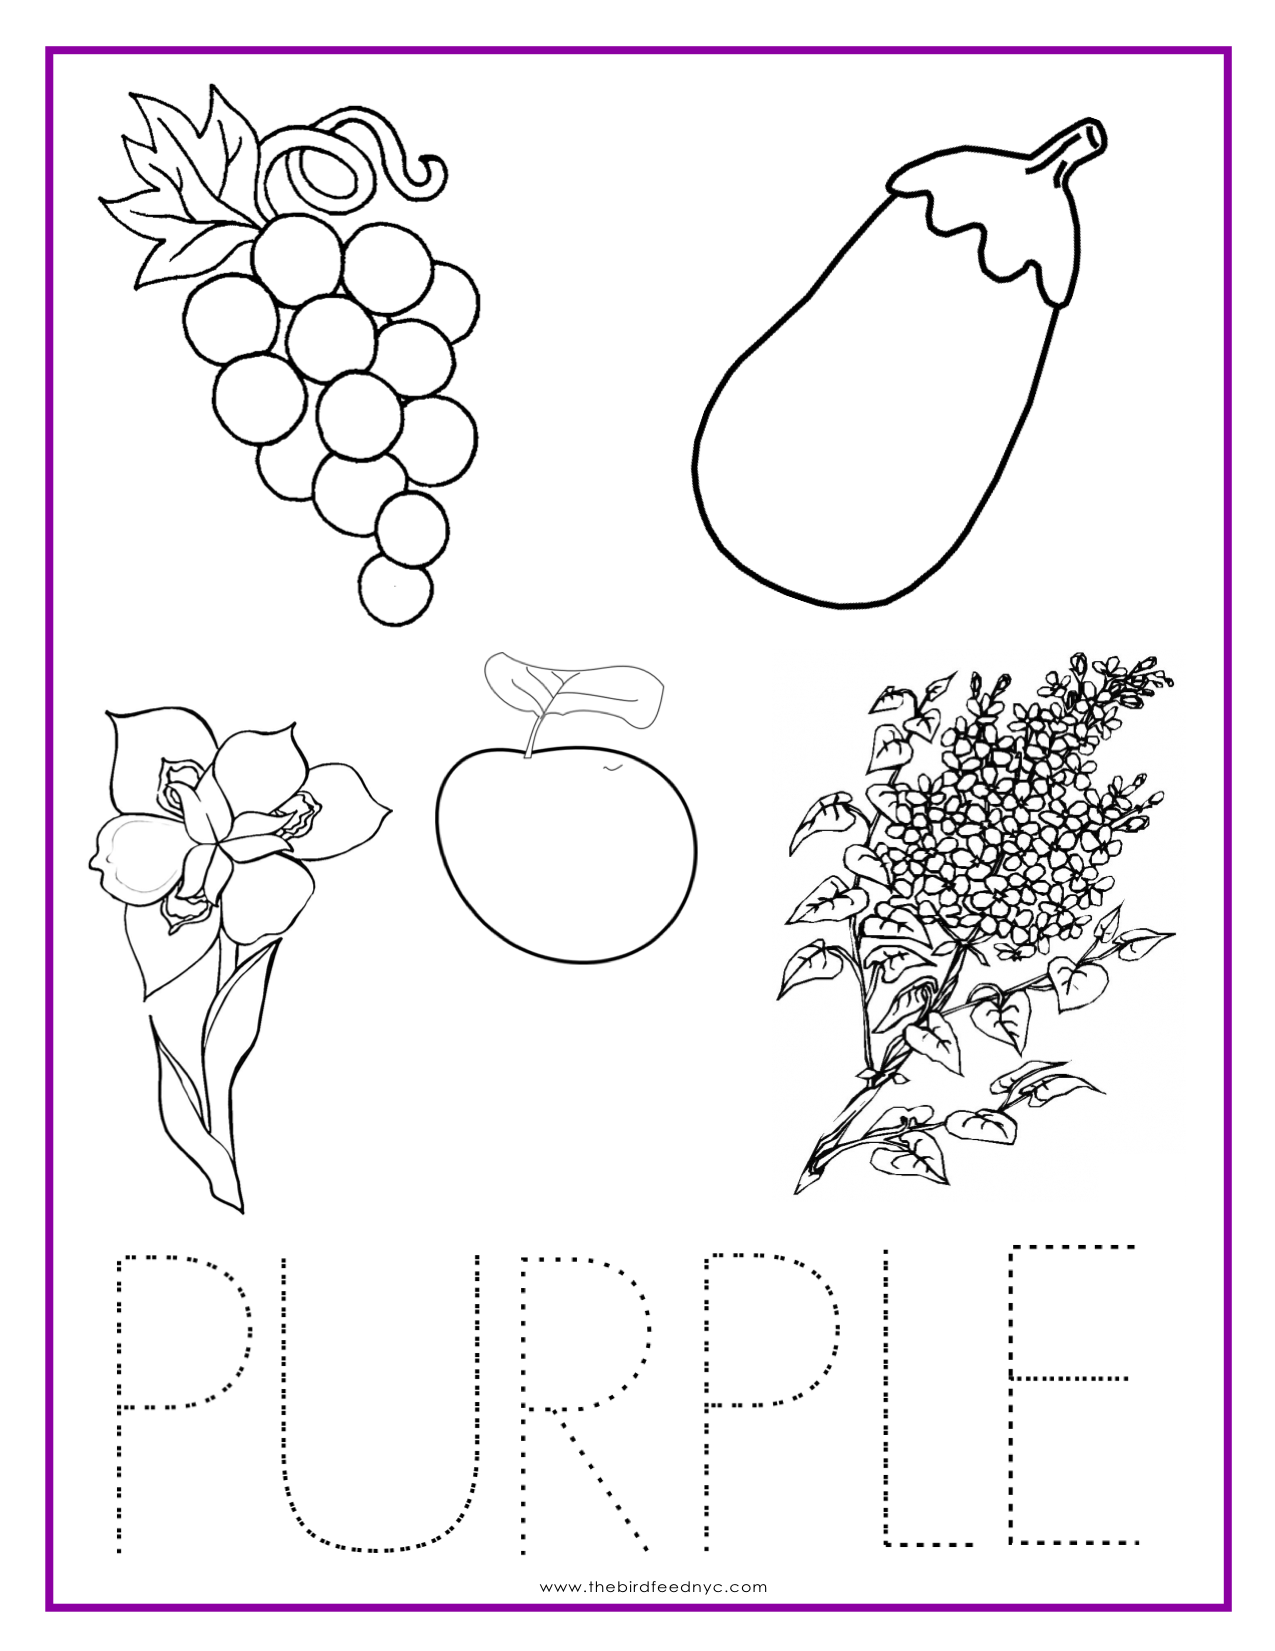 Coloring games in english - Purple Color Activity Sheet